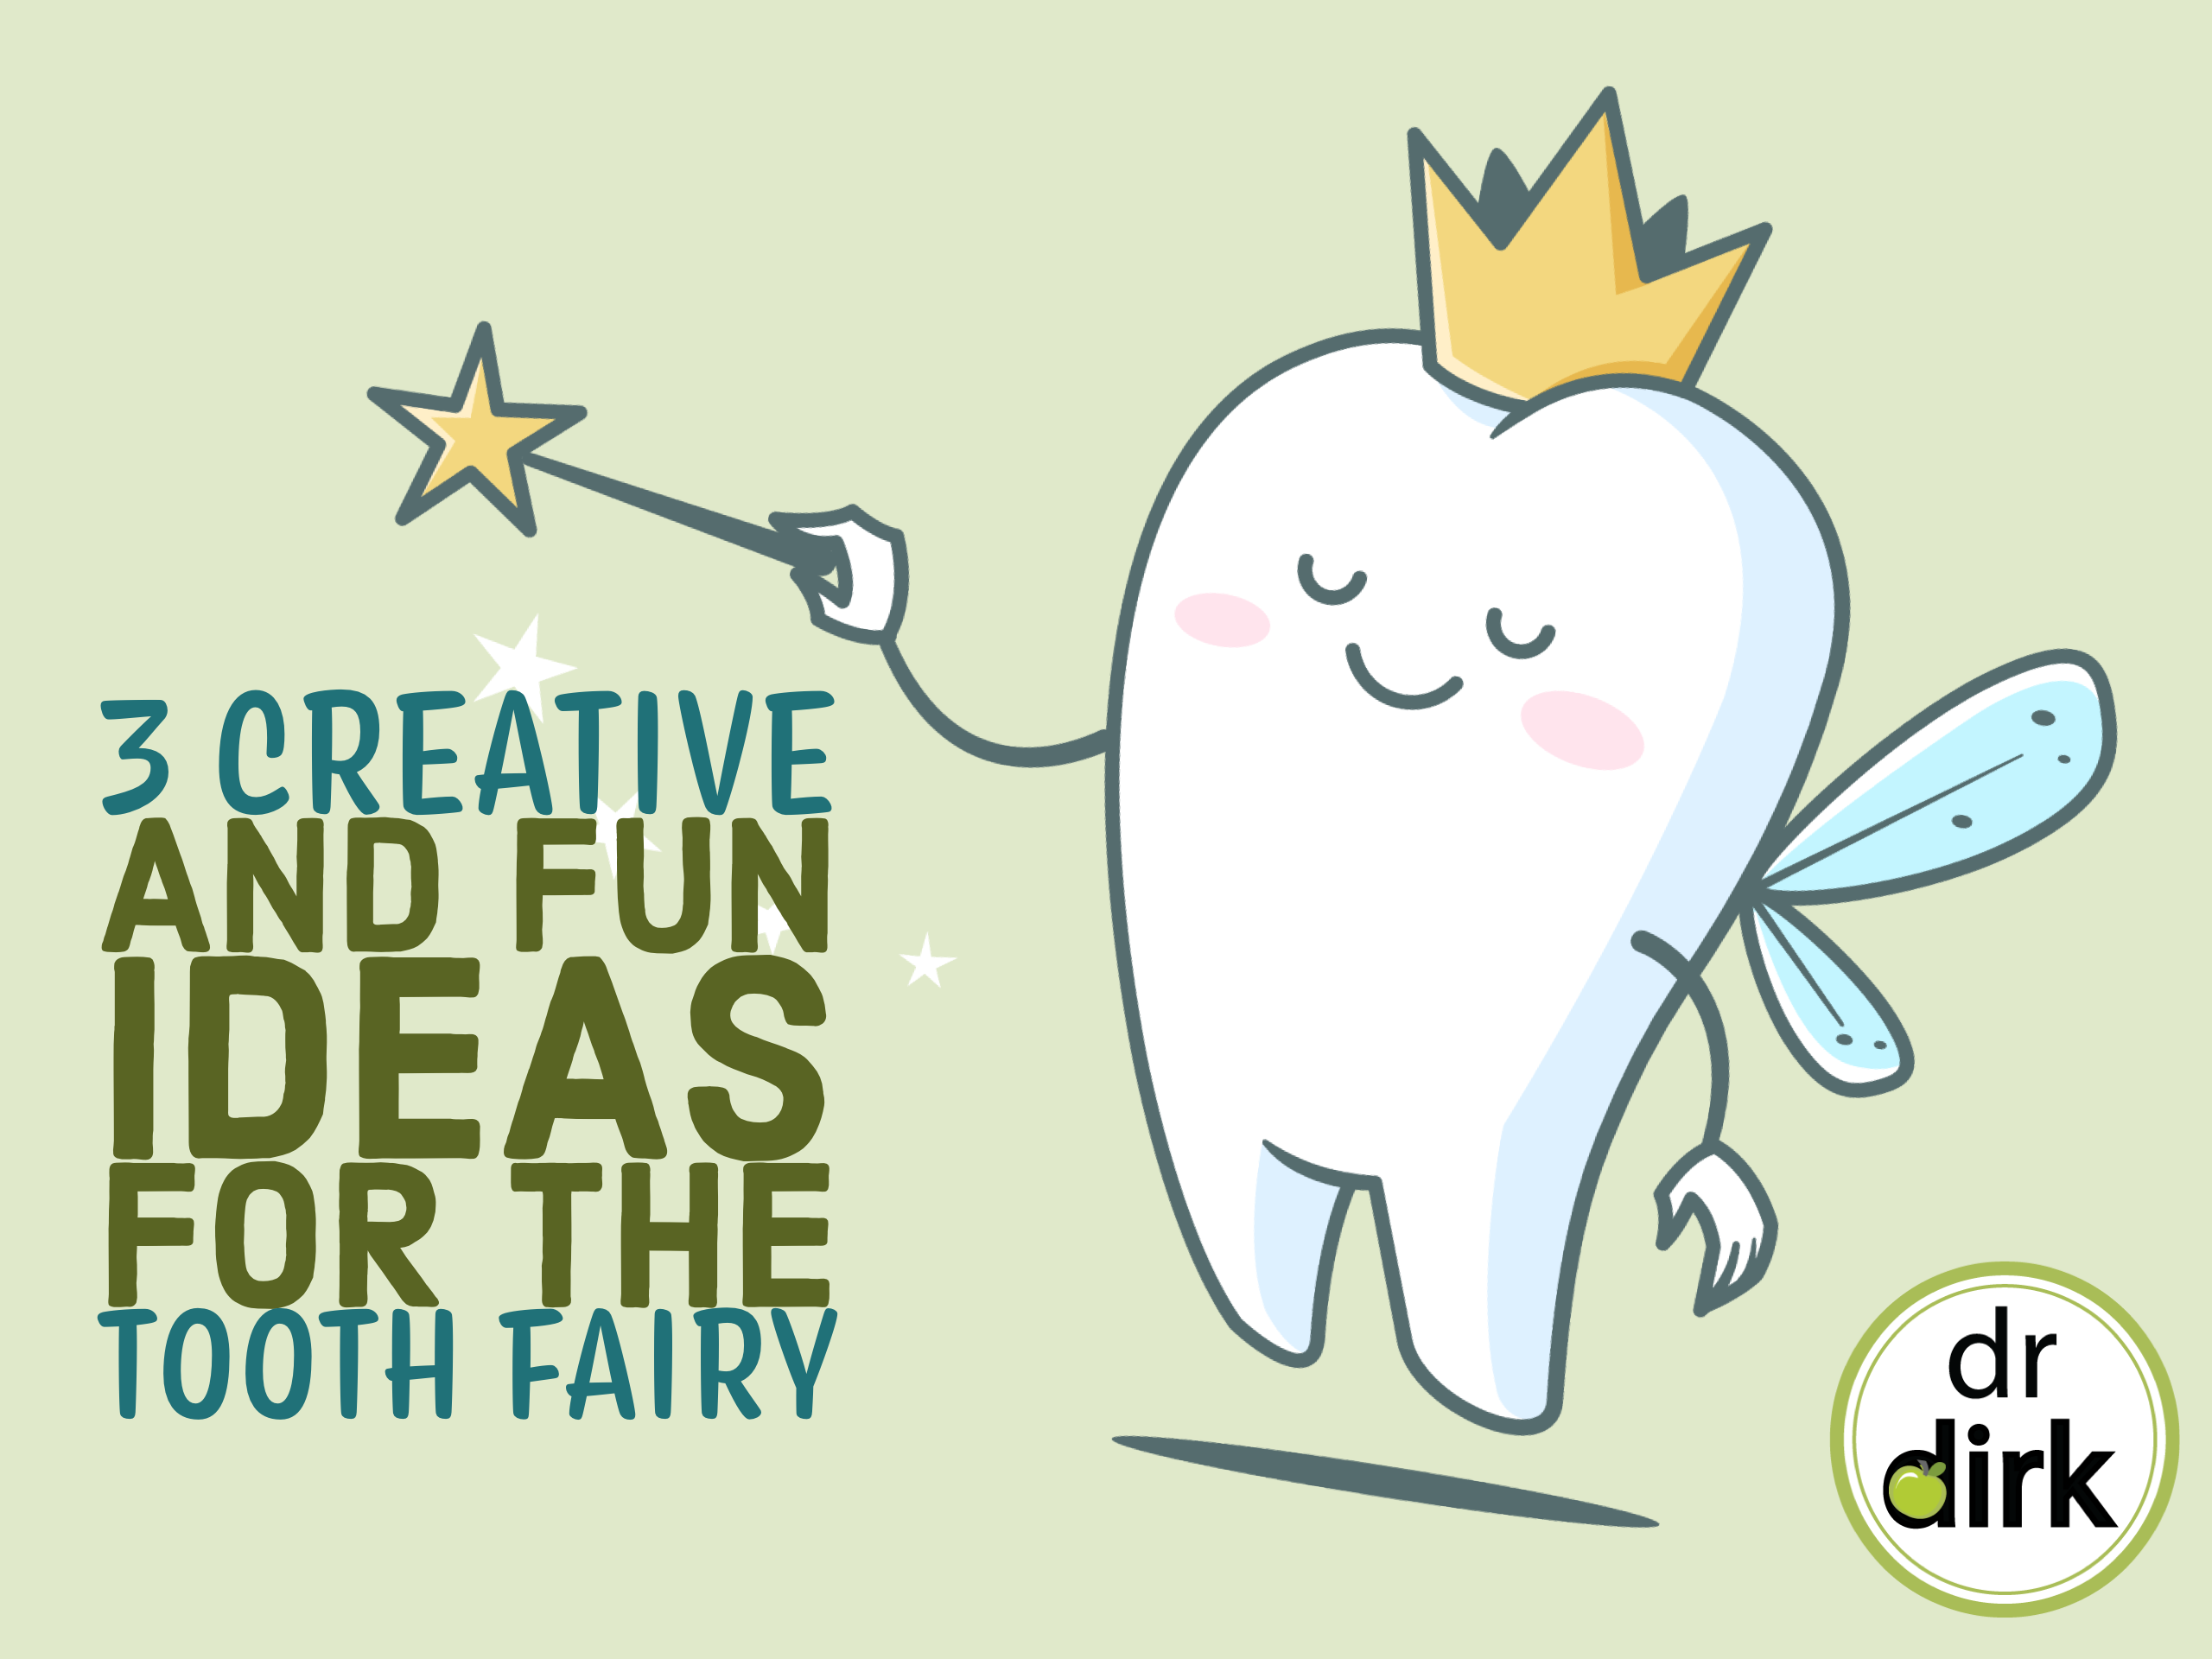 3 Fun Tooth Fairy Ideas From Our Calgary Dentist